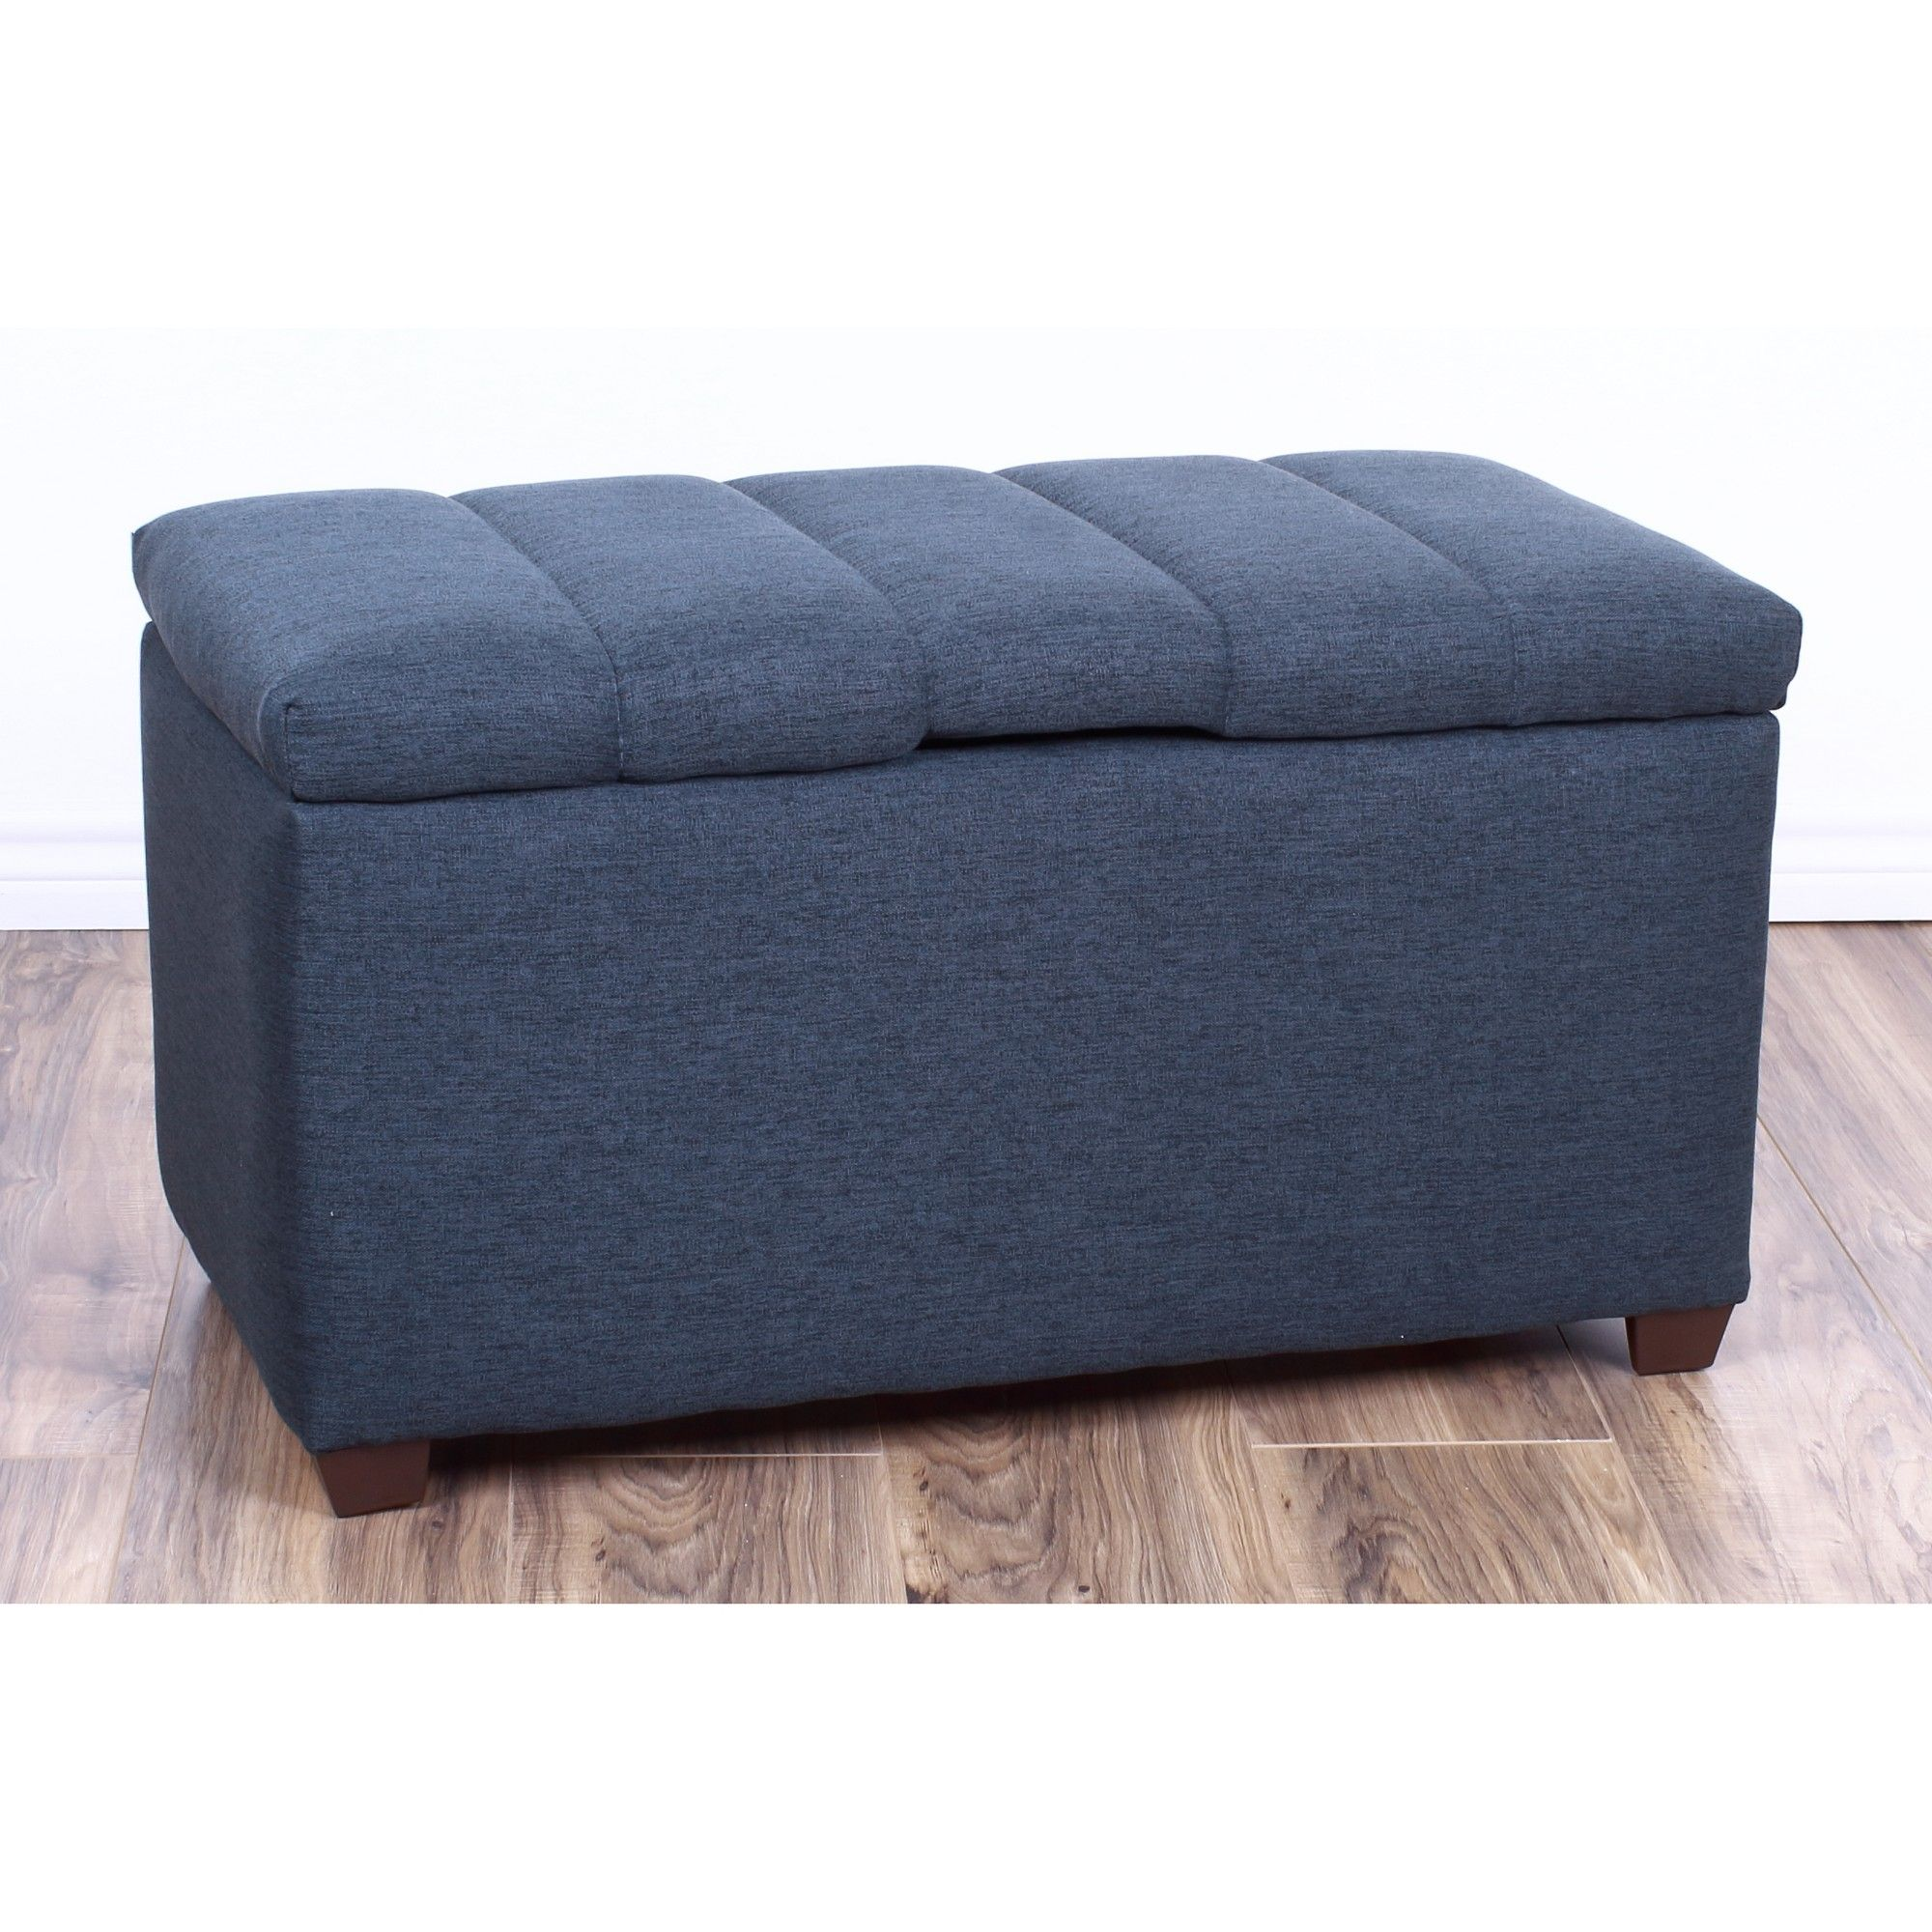 Kids Storage Ottoman Navy Blue The Crew Furniture Gray With Images Storage Ottoman Bench